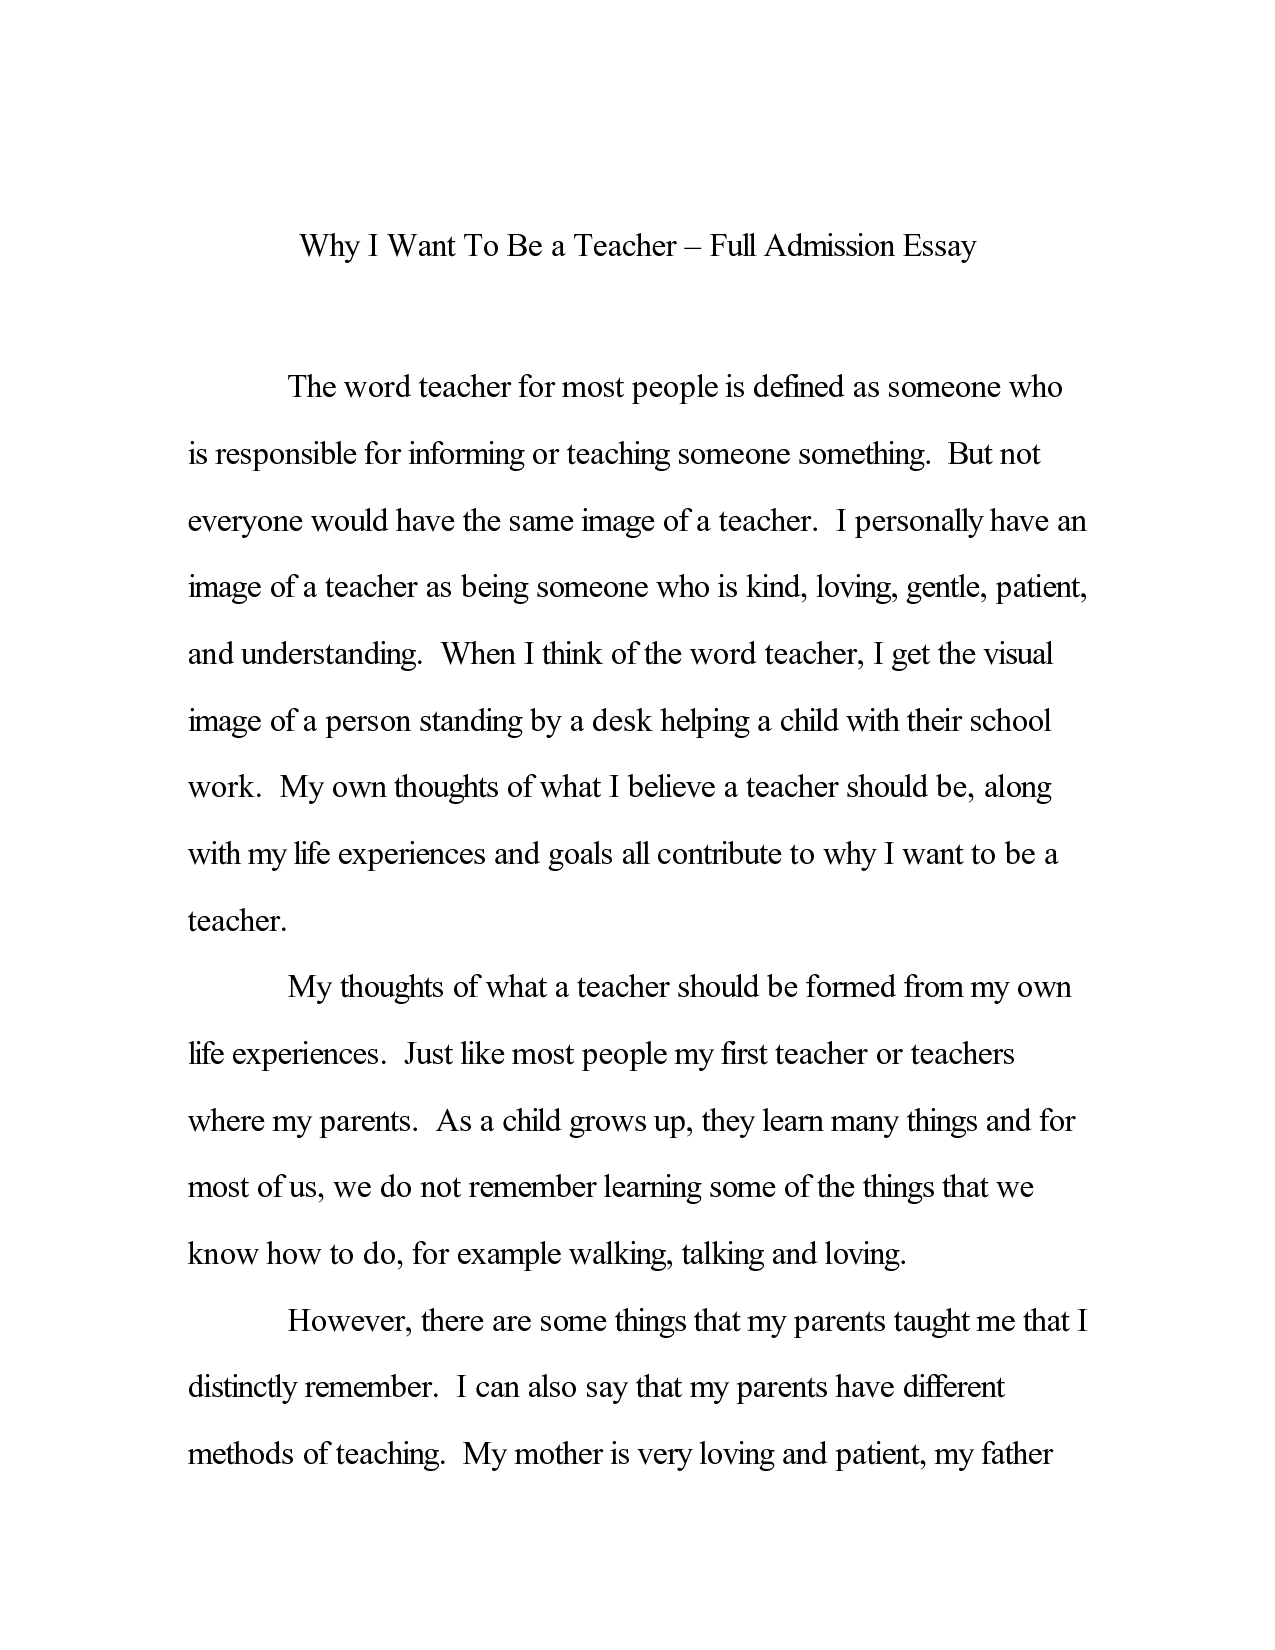 accepted college essay